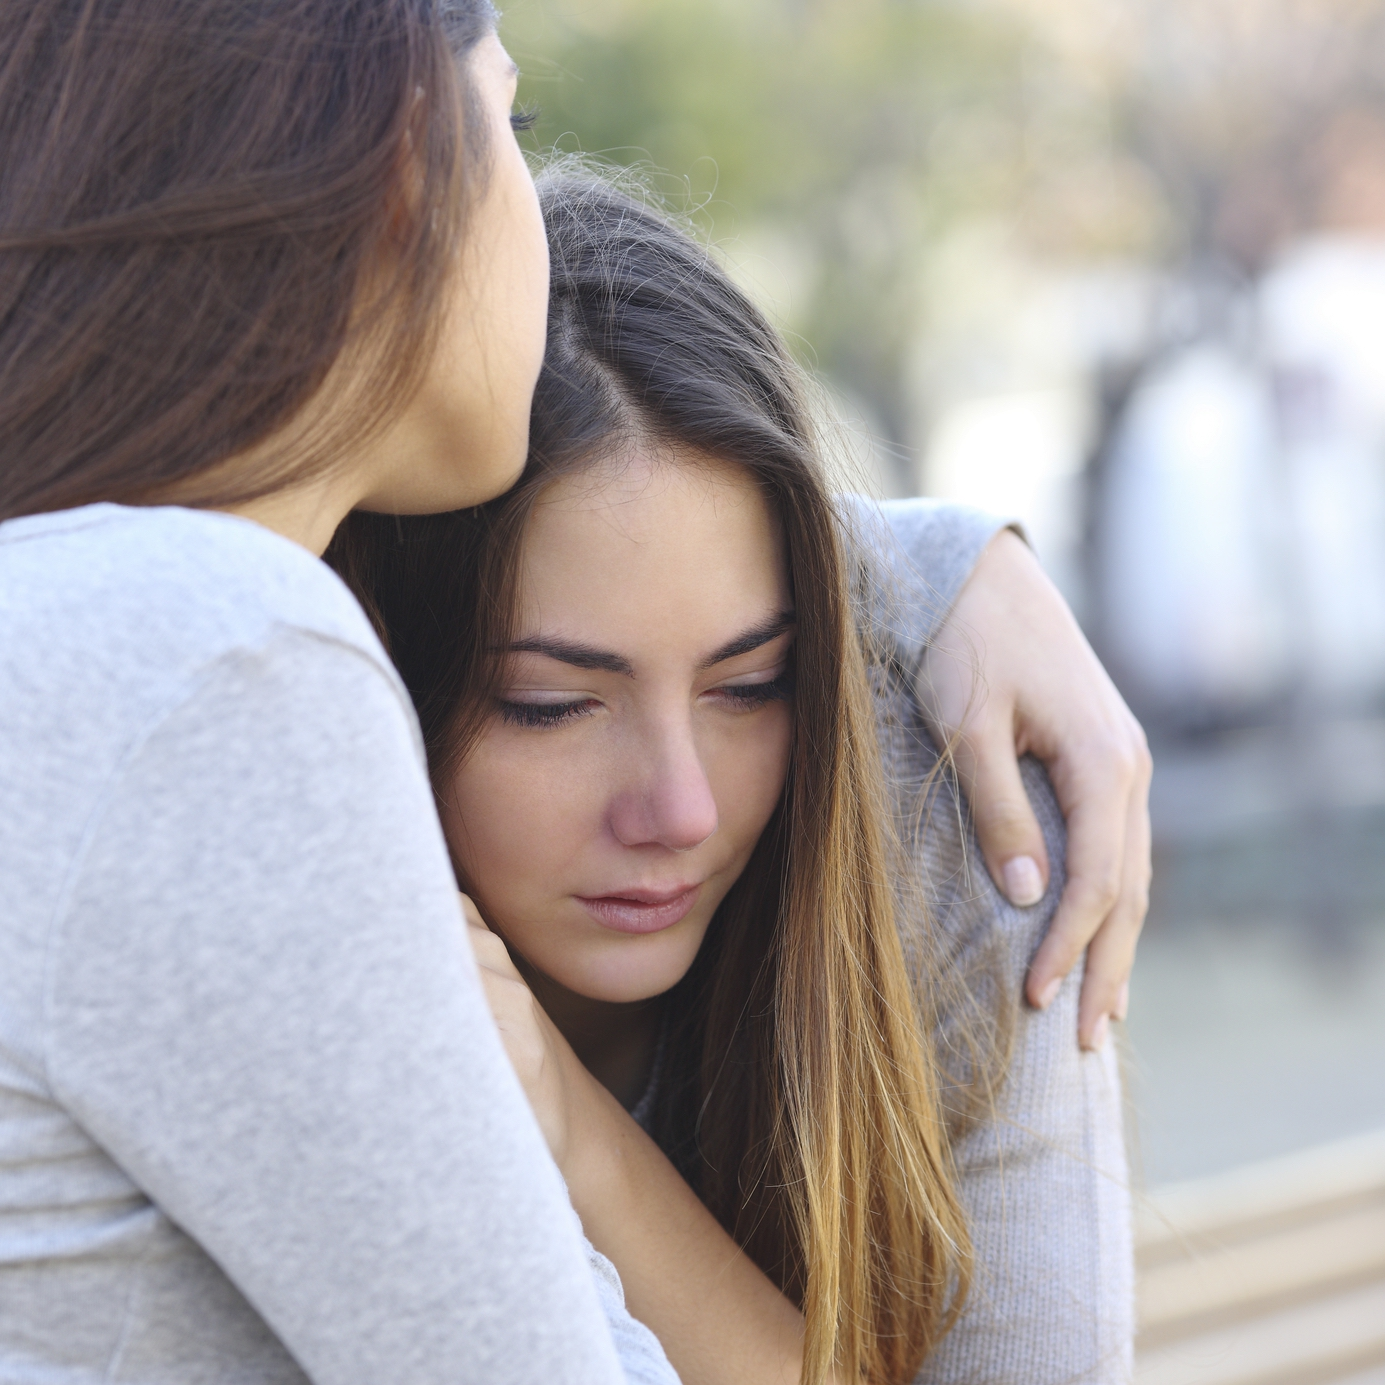 BLOG - Supporting a Grieving Loved One